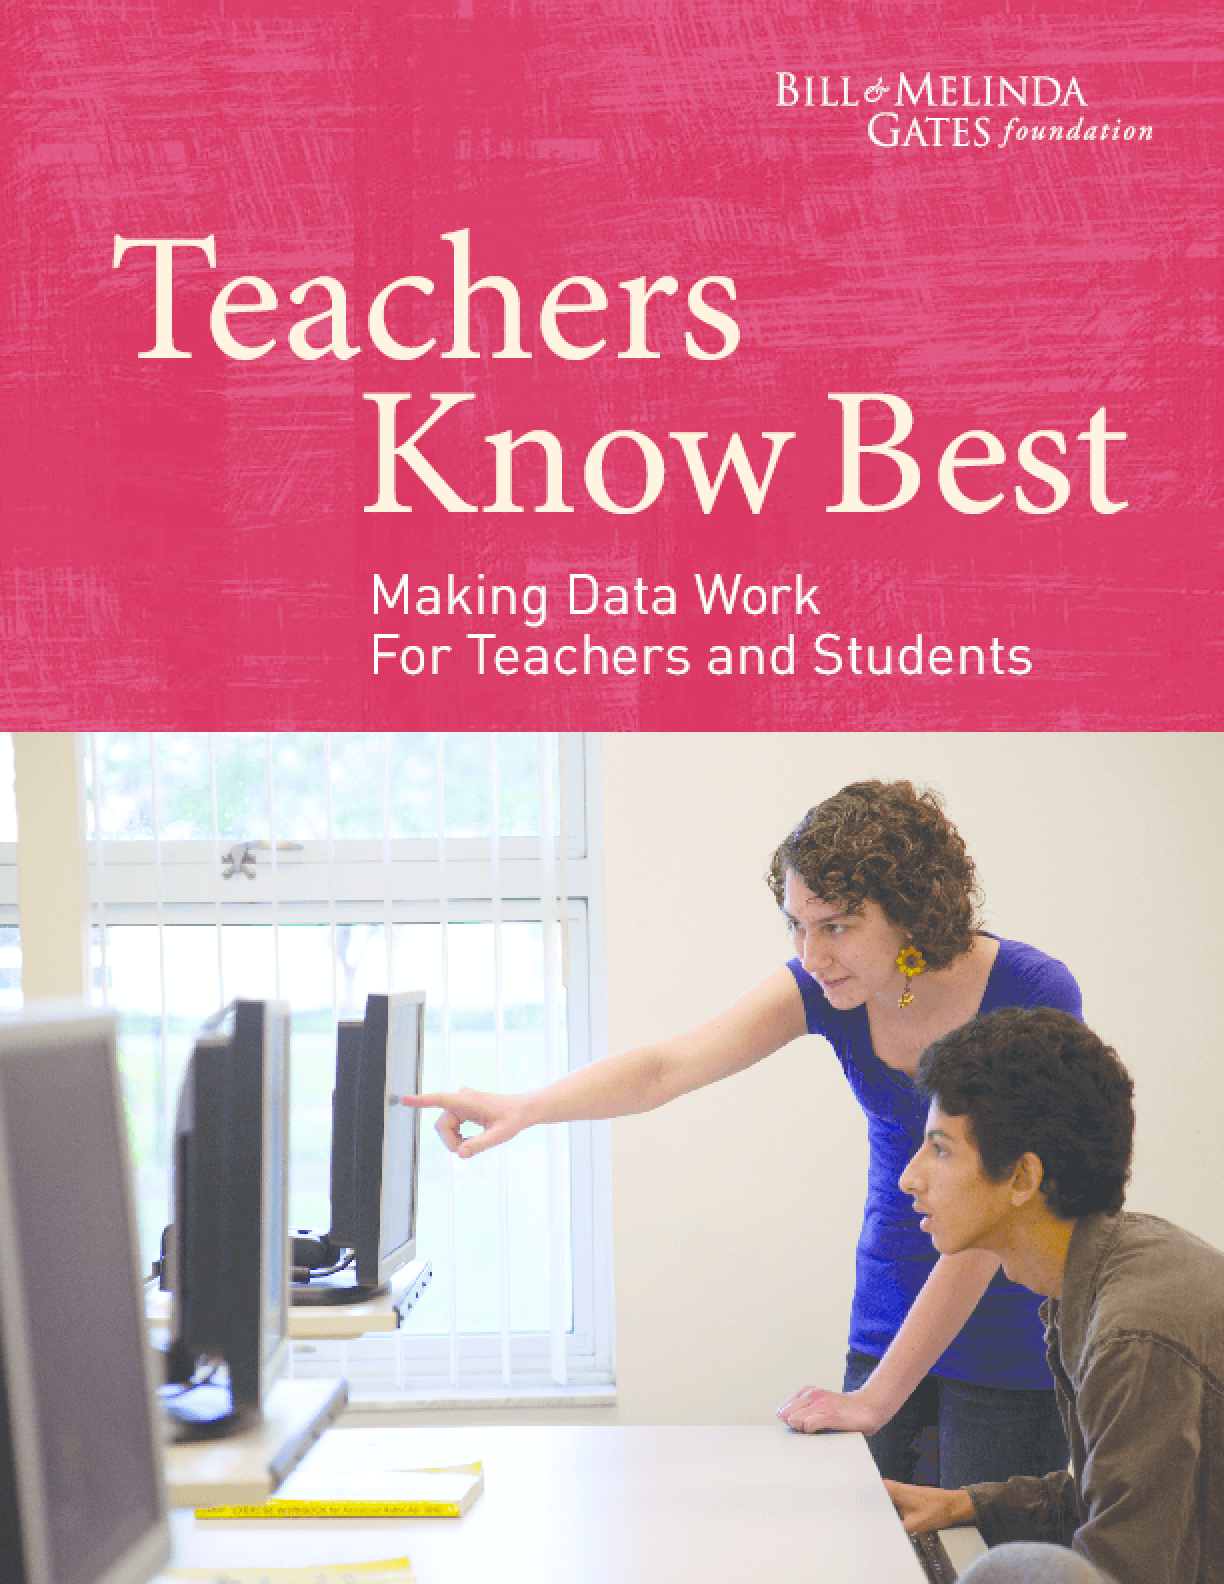 Teachers Know Best: Making Data Work For Teachers and Students